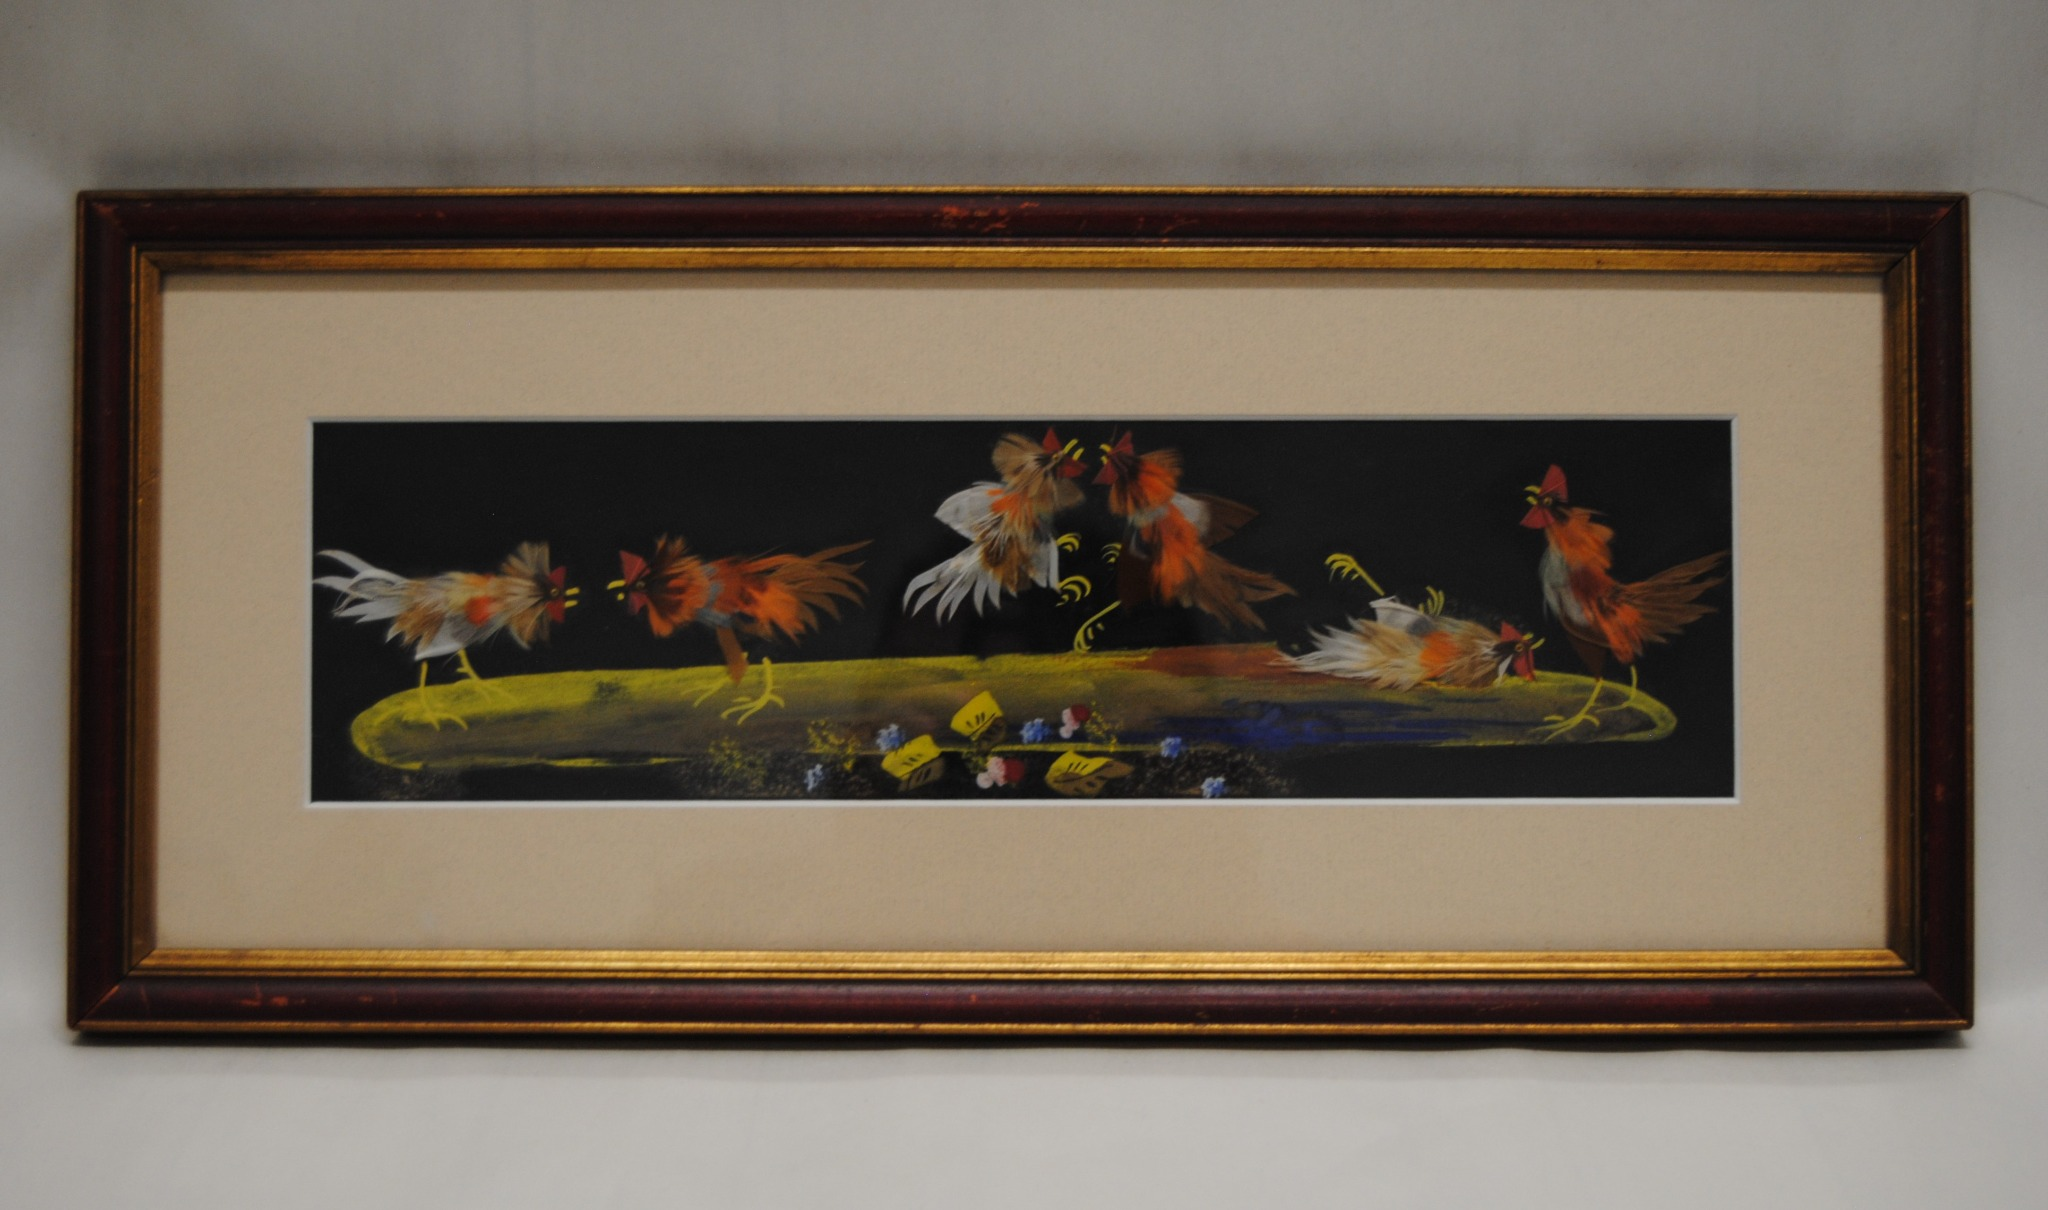 Vintage 1920's Mexican Feathercraft Art Framed and Matted (E)